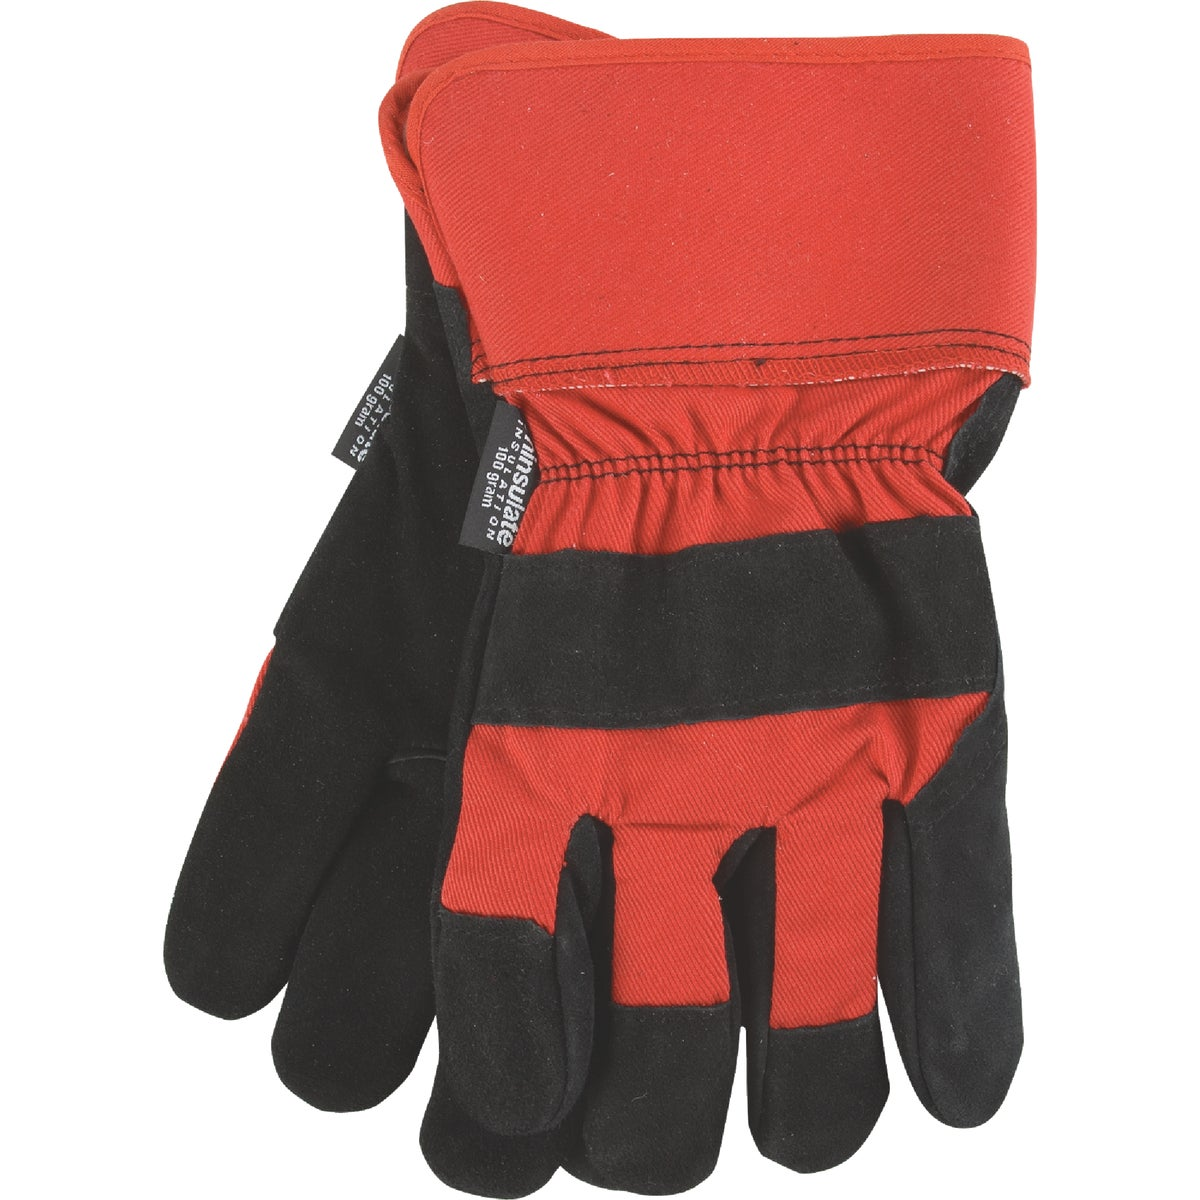 XL MEN'S COWHIDE GLOVE - 750882 by Do it Best